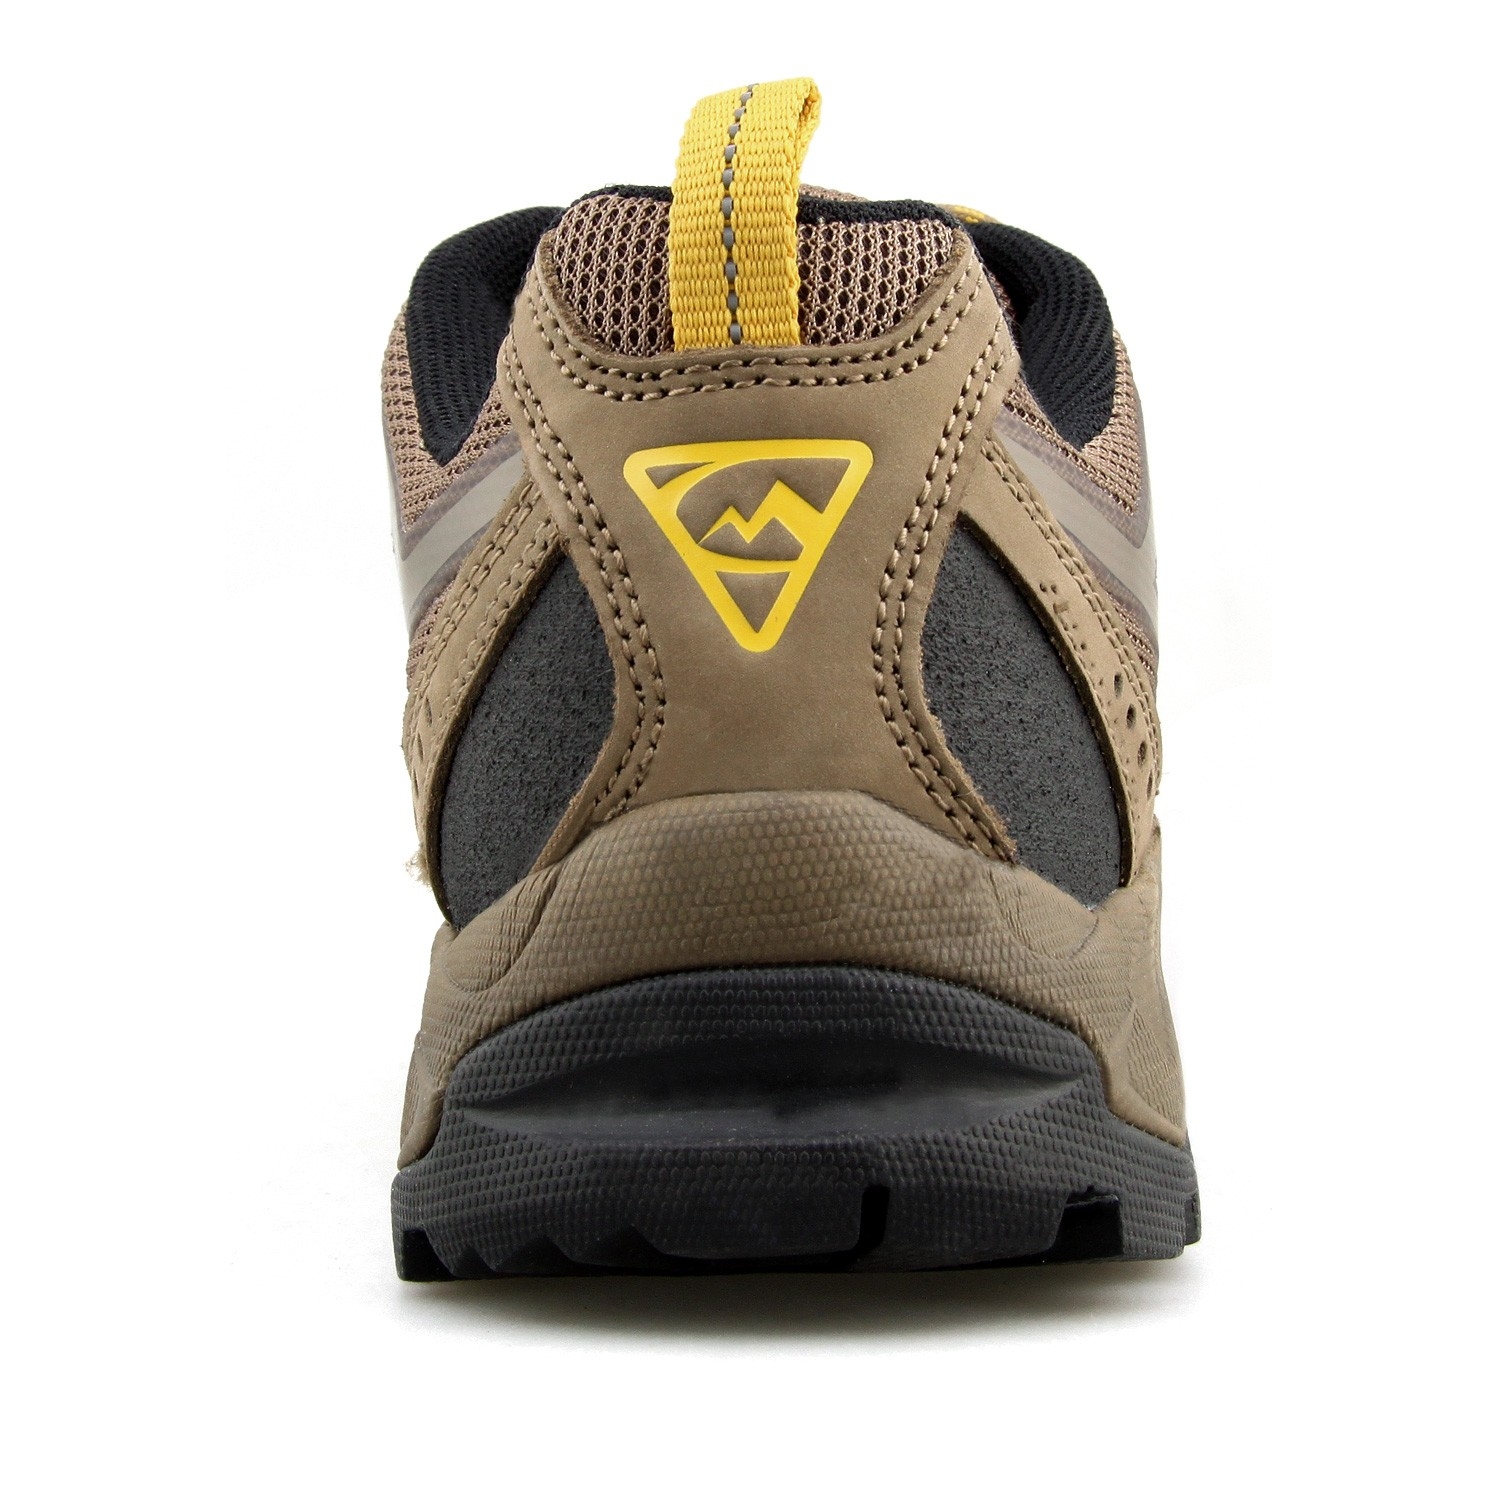 Mens Trail Mountain Hiking Shoes Walking Shoes Manufacturers, Mens Trail Mountain Hiking Shoes Walking Shoes Factory, Supply Mens Trail Mountain Hiking Shoes Walking Shoes